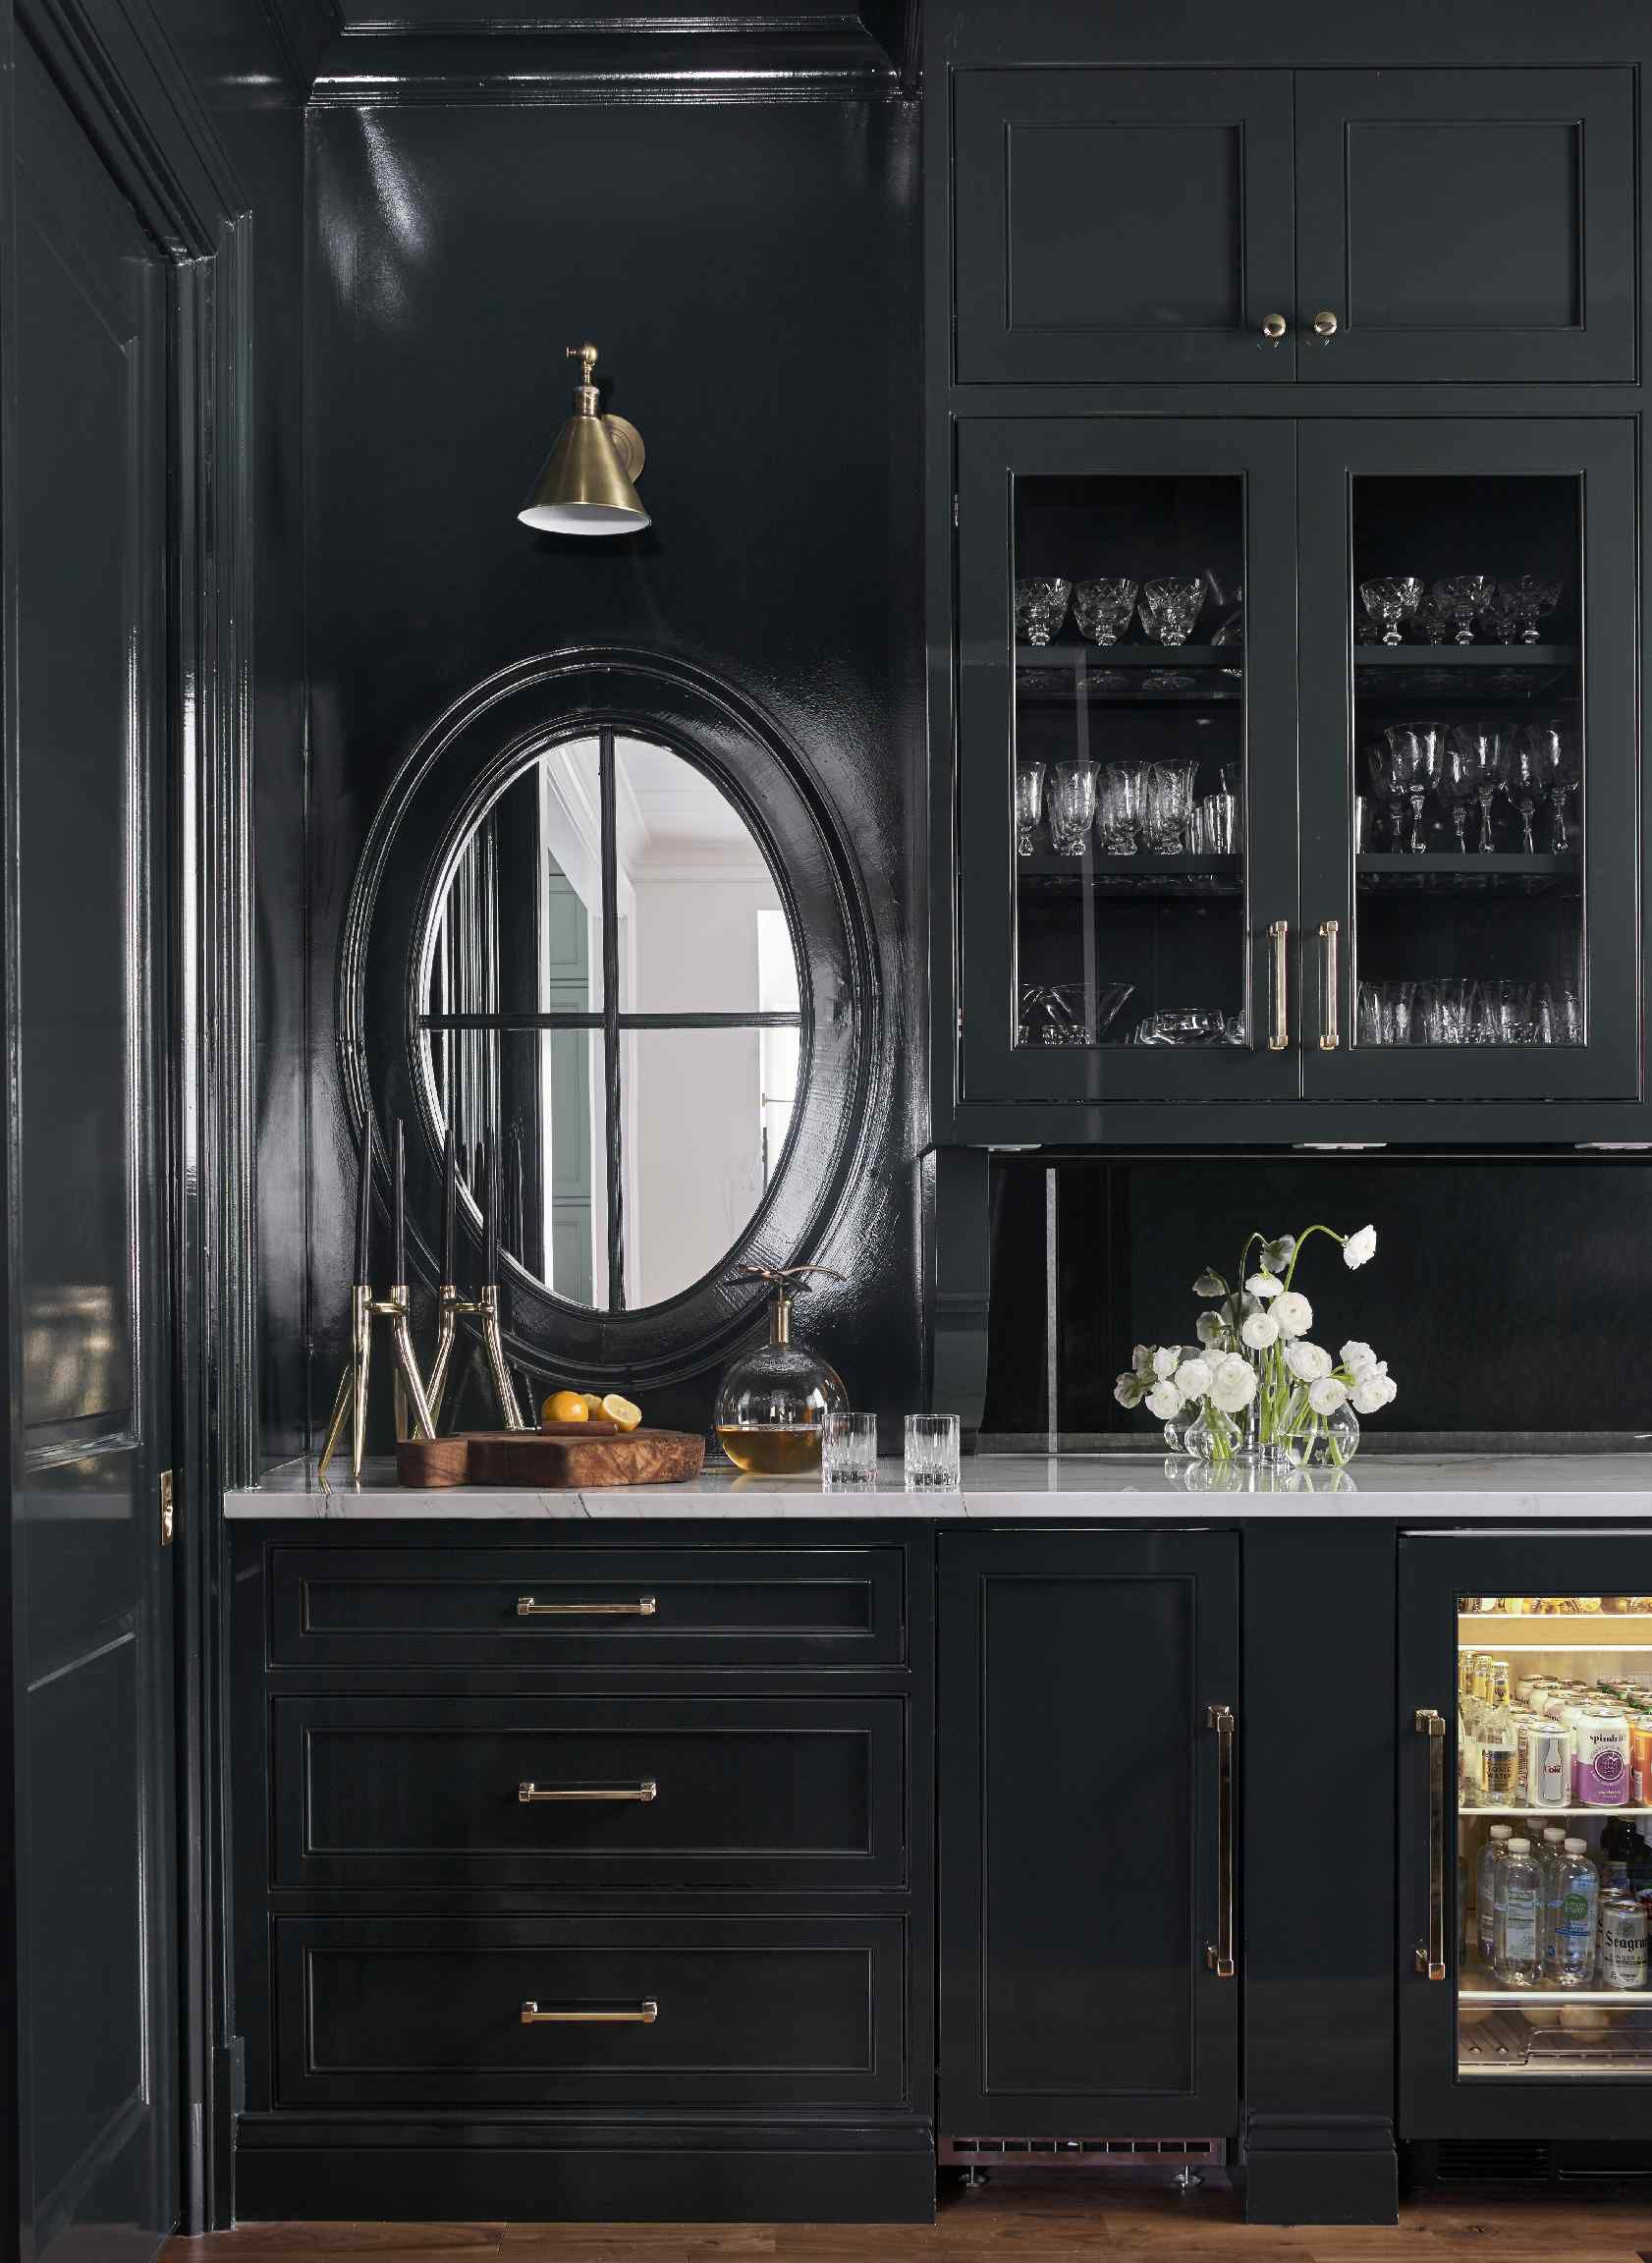 Lacquered Kitchen We Completed Studio Green By Farrow Ball Looks